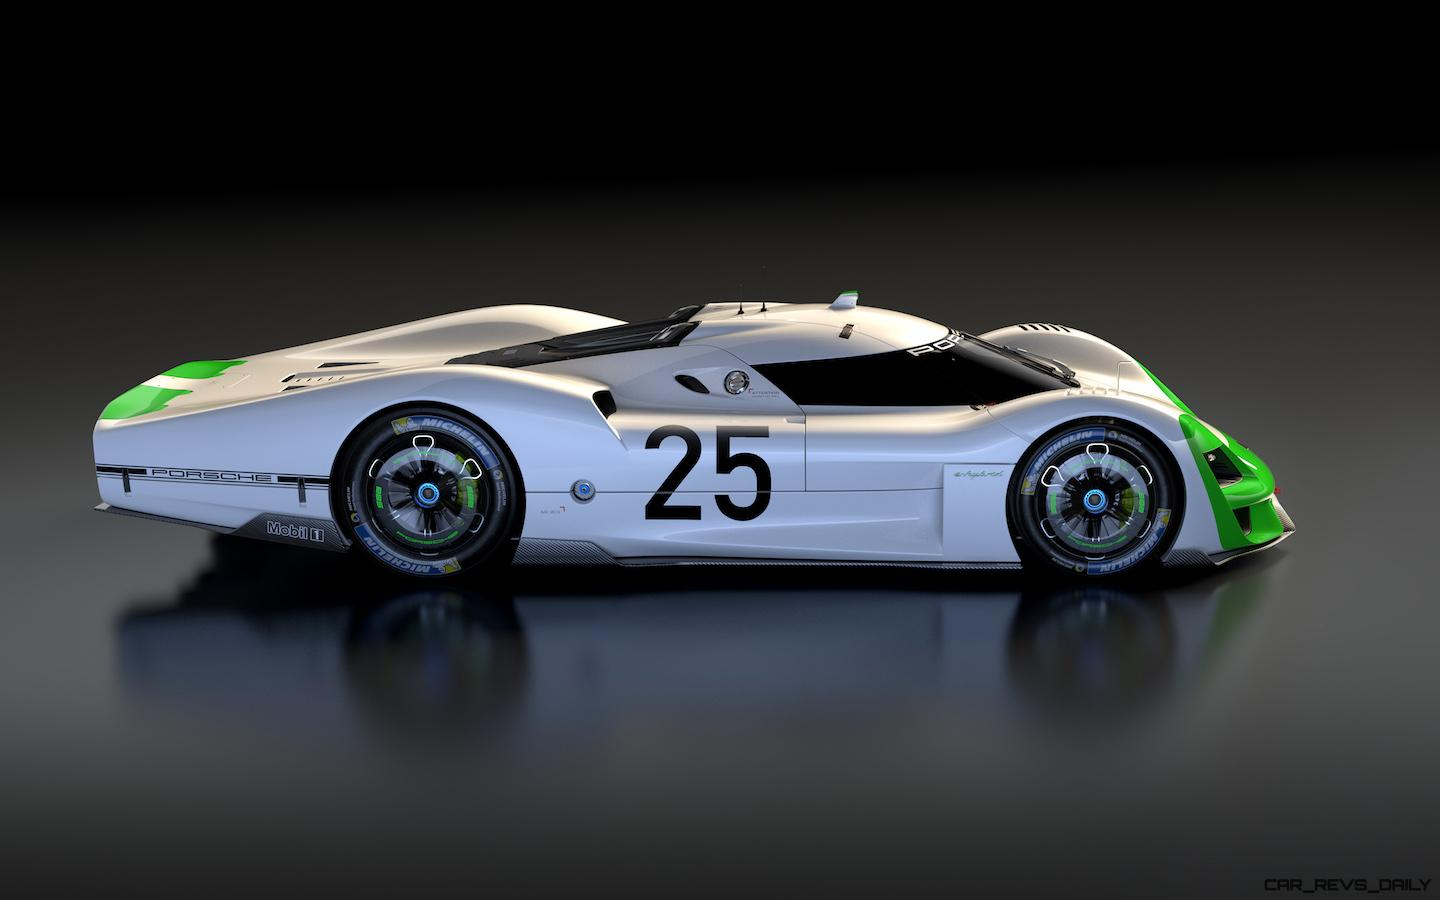 Porsche 908-04 Longtail - Vision GT Hommage (Part One) 23 on vision mazda gt, vision ford gt, vision toyota gt, vision nissan gt,